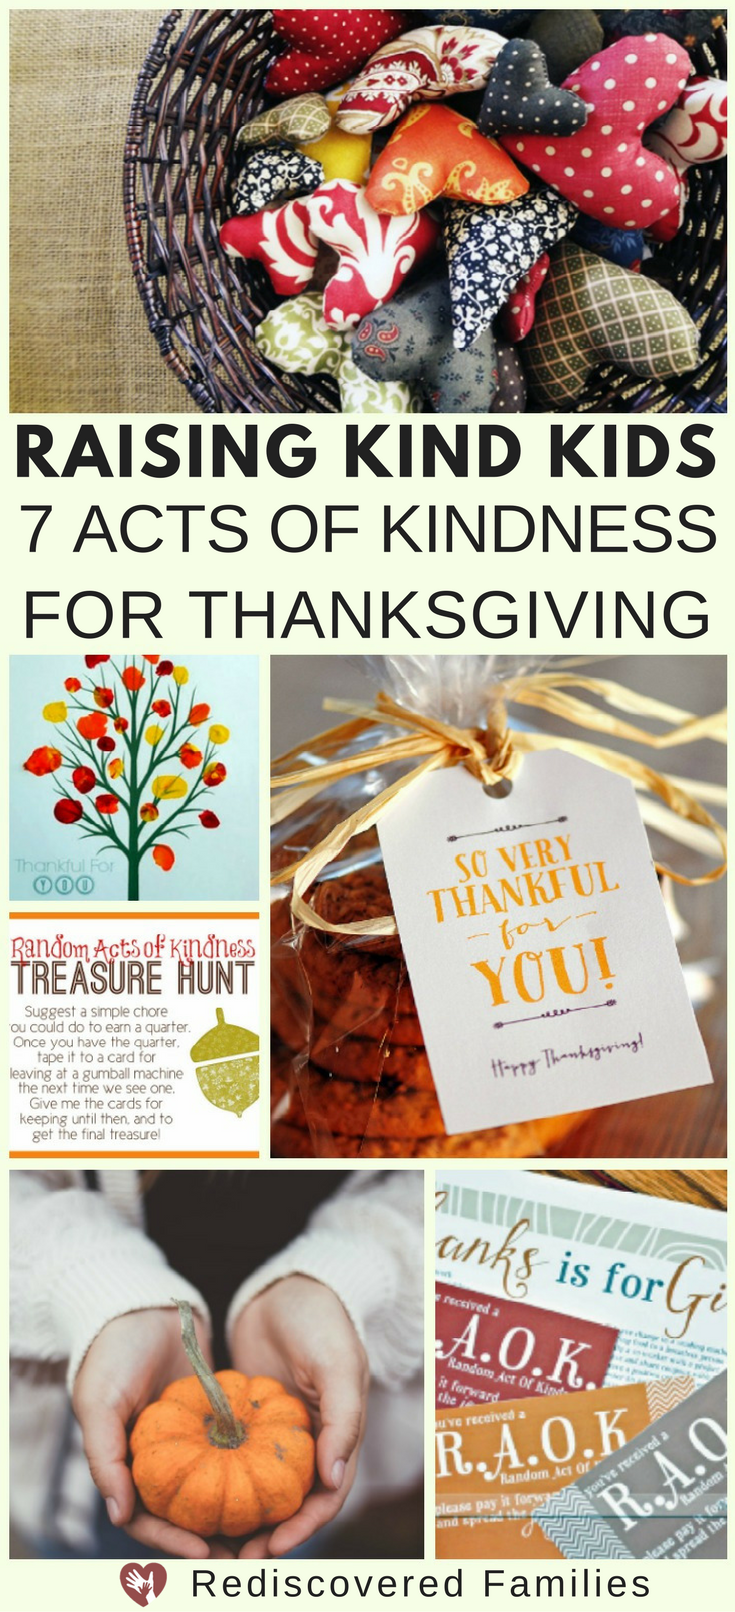 Acts of Kindness for Thanksgving